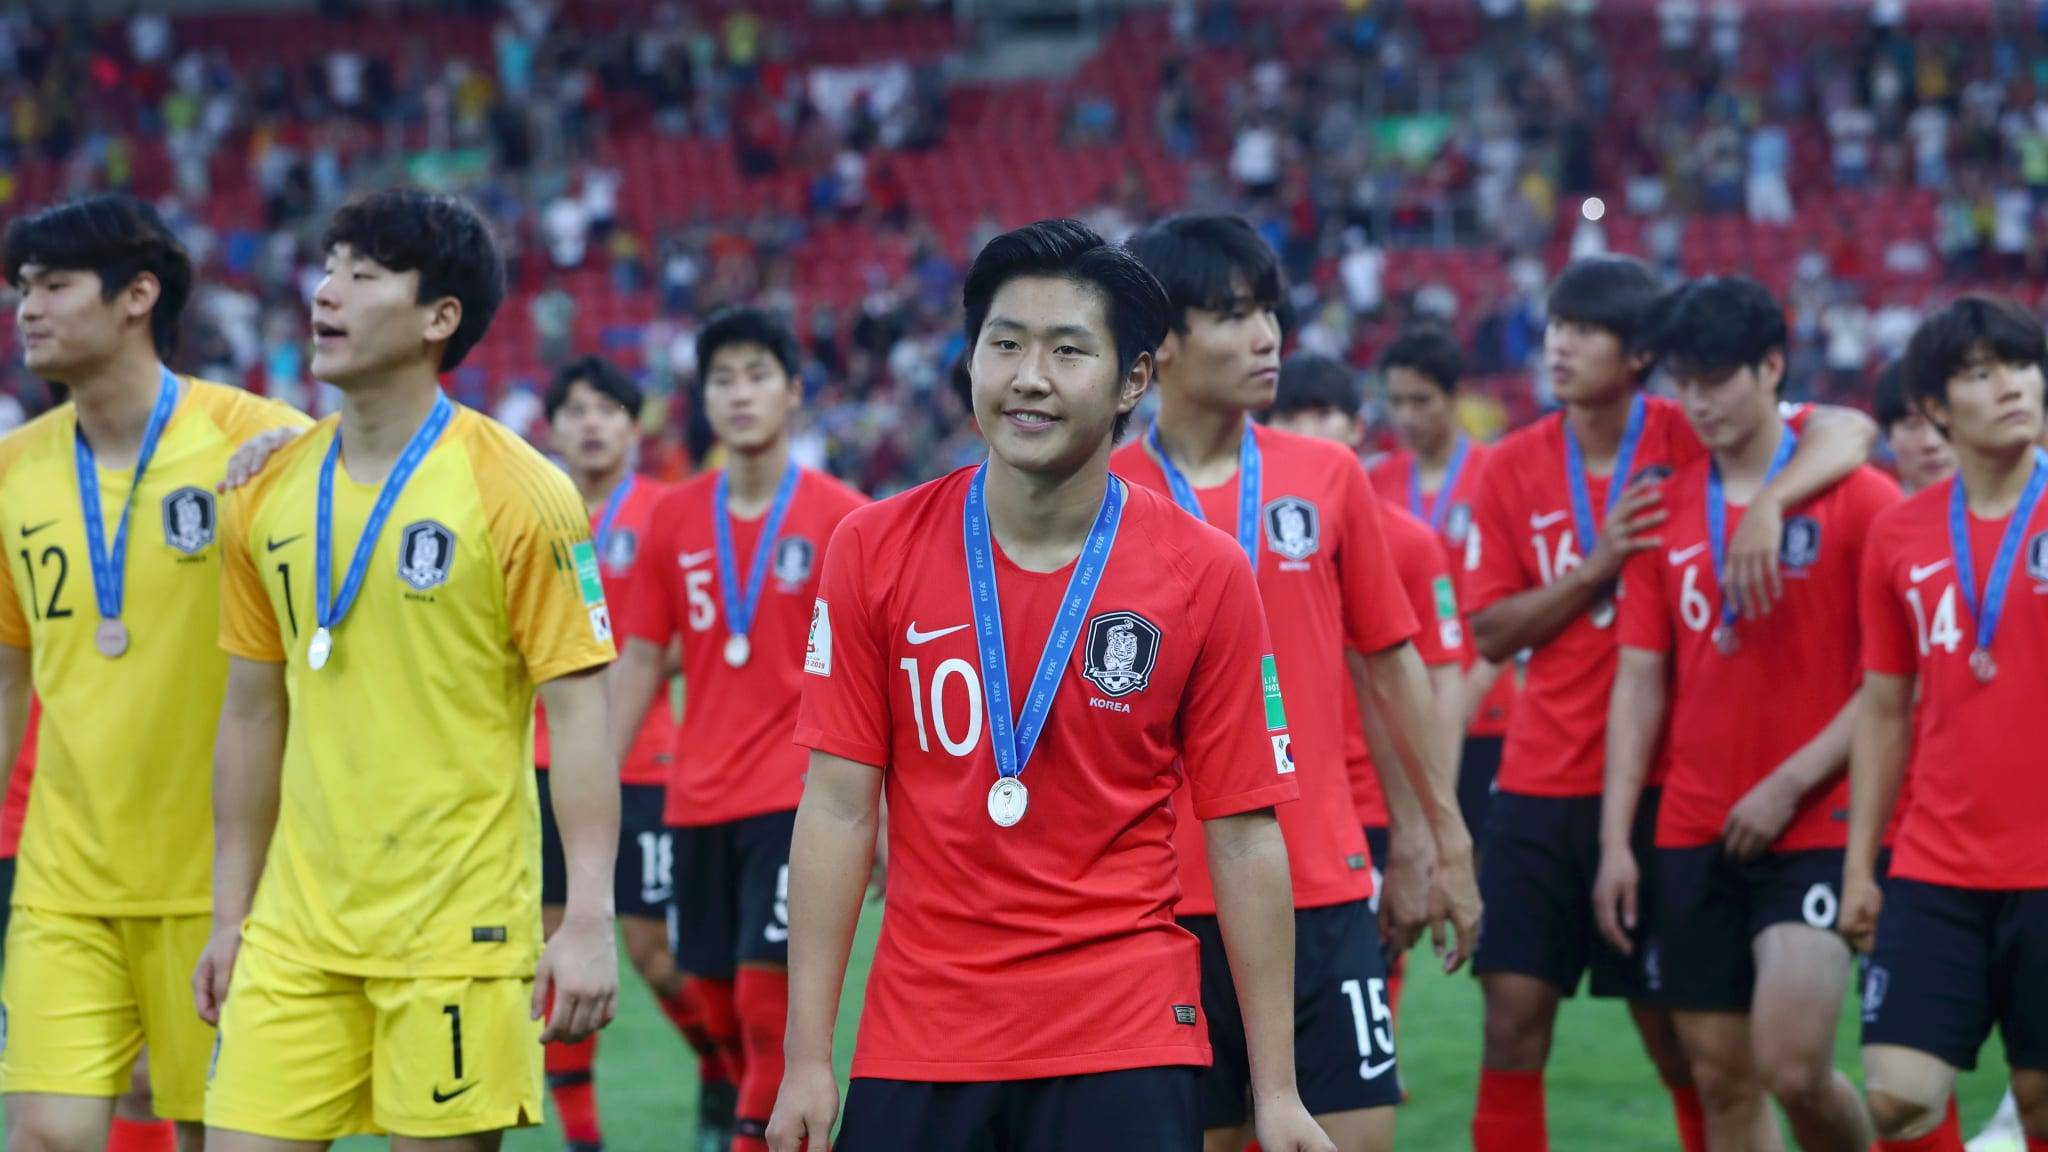 Korea Come Up Short in Final Against Ukraine